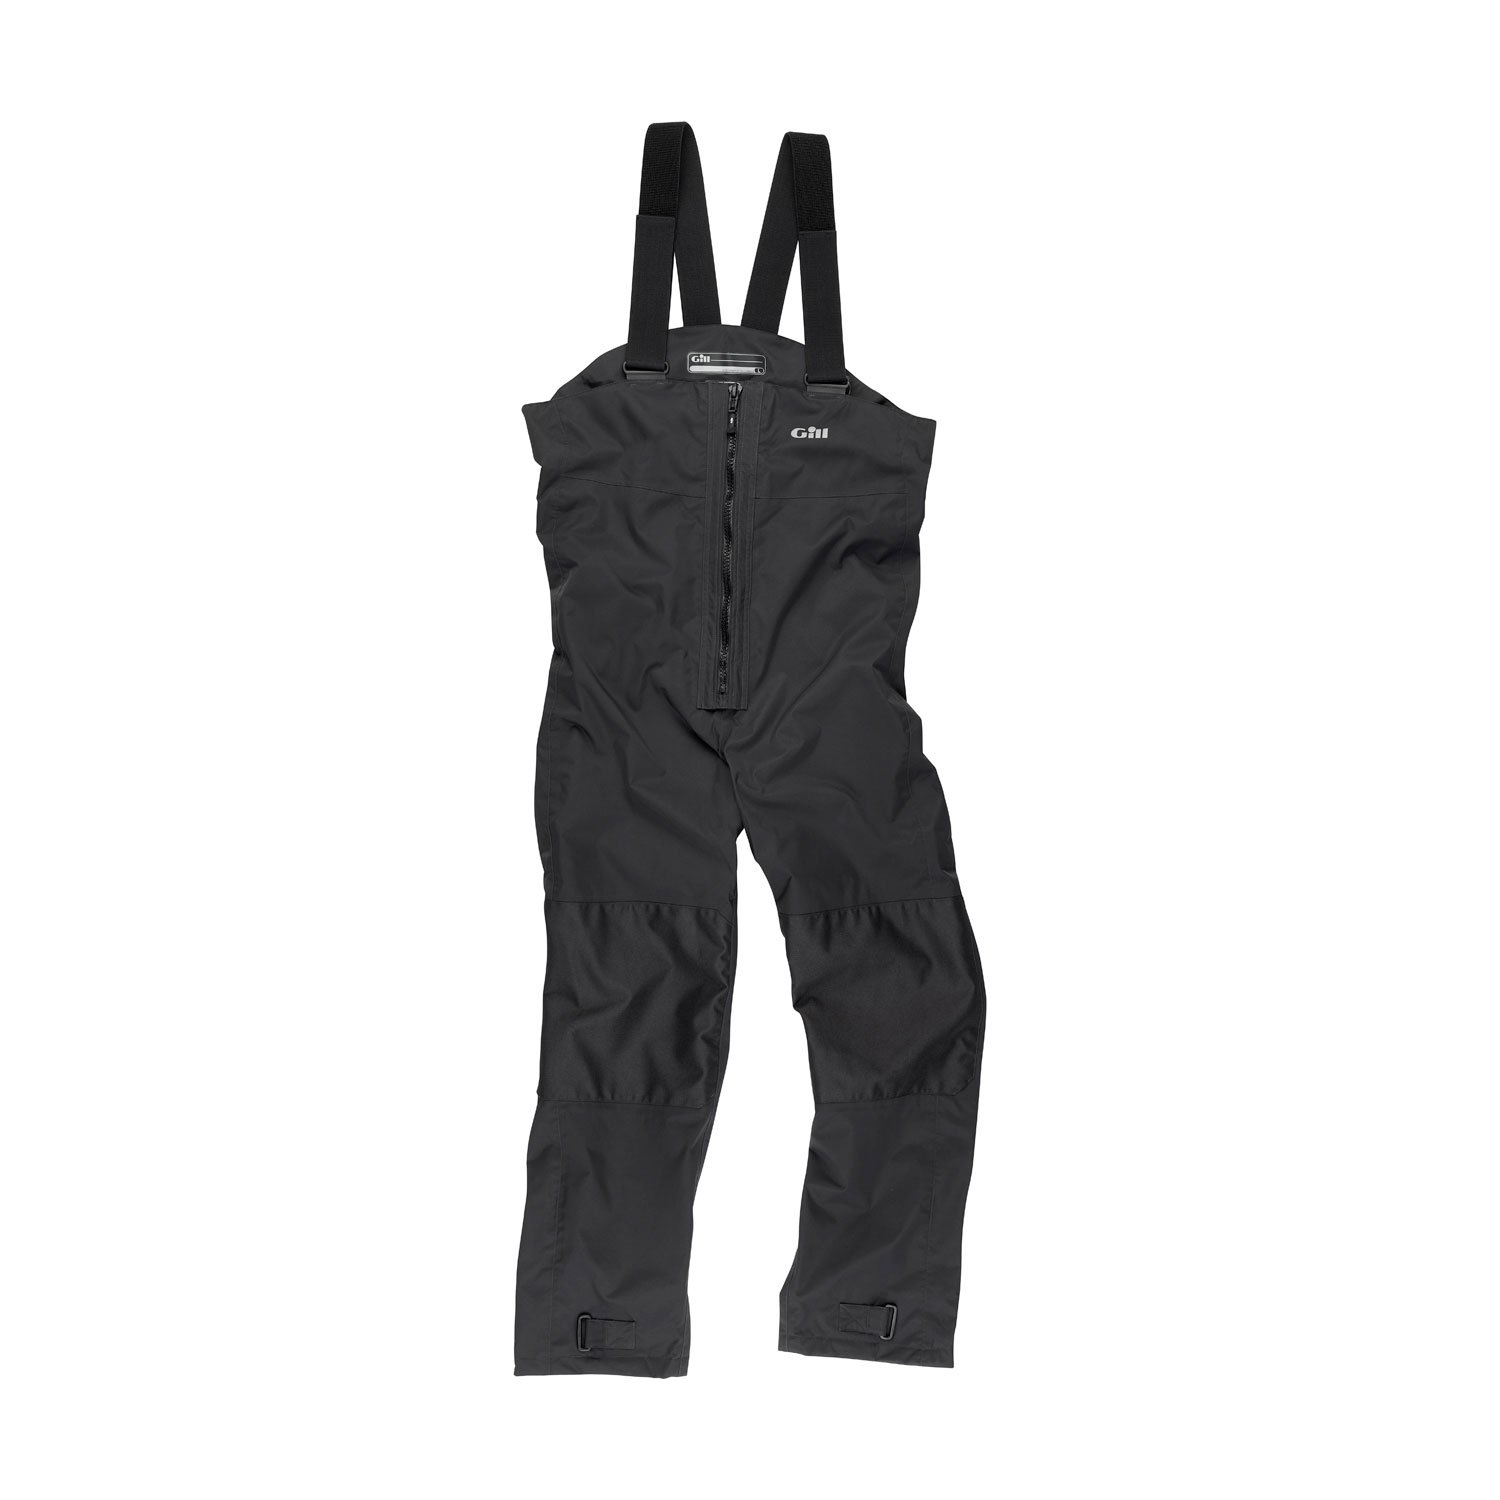 Gill IN12T Coast Trousers (Graphite, XS) IN12TGXS by Gill